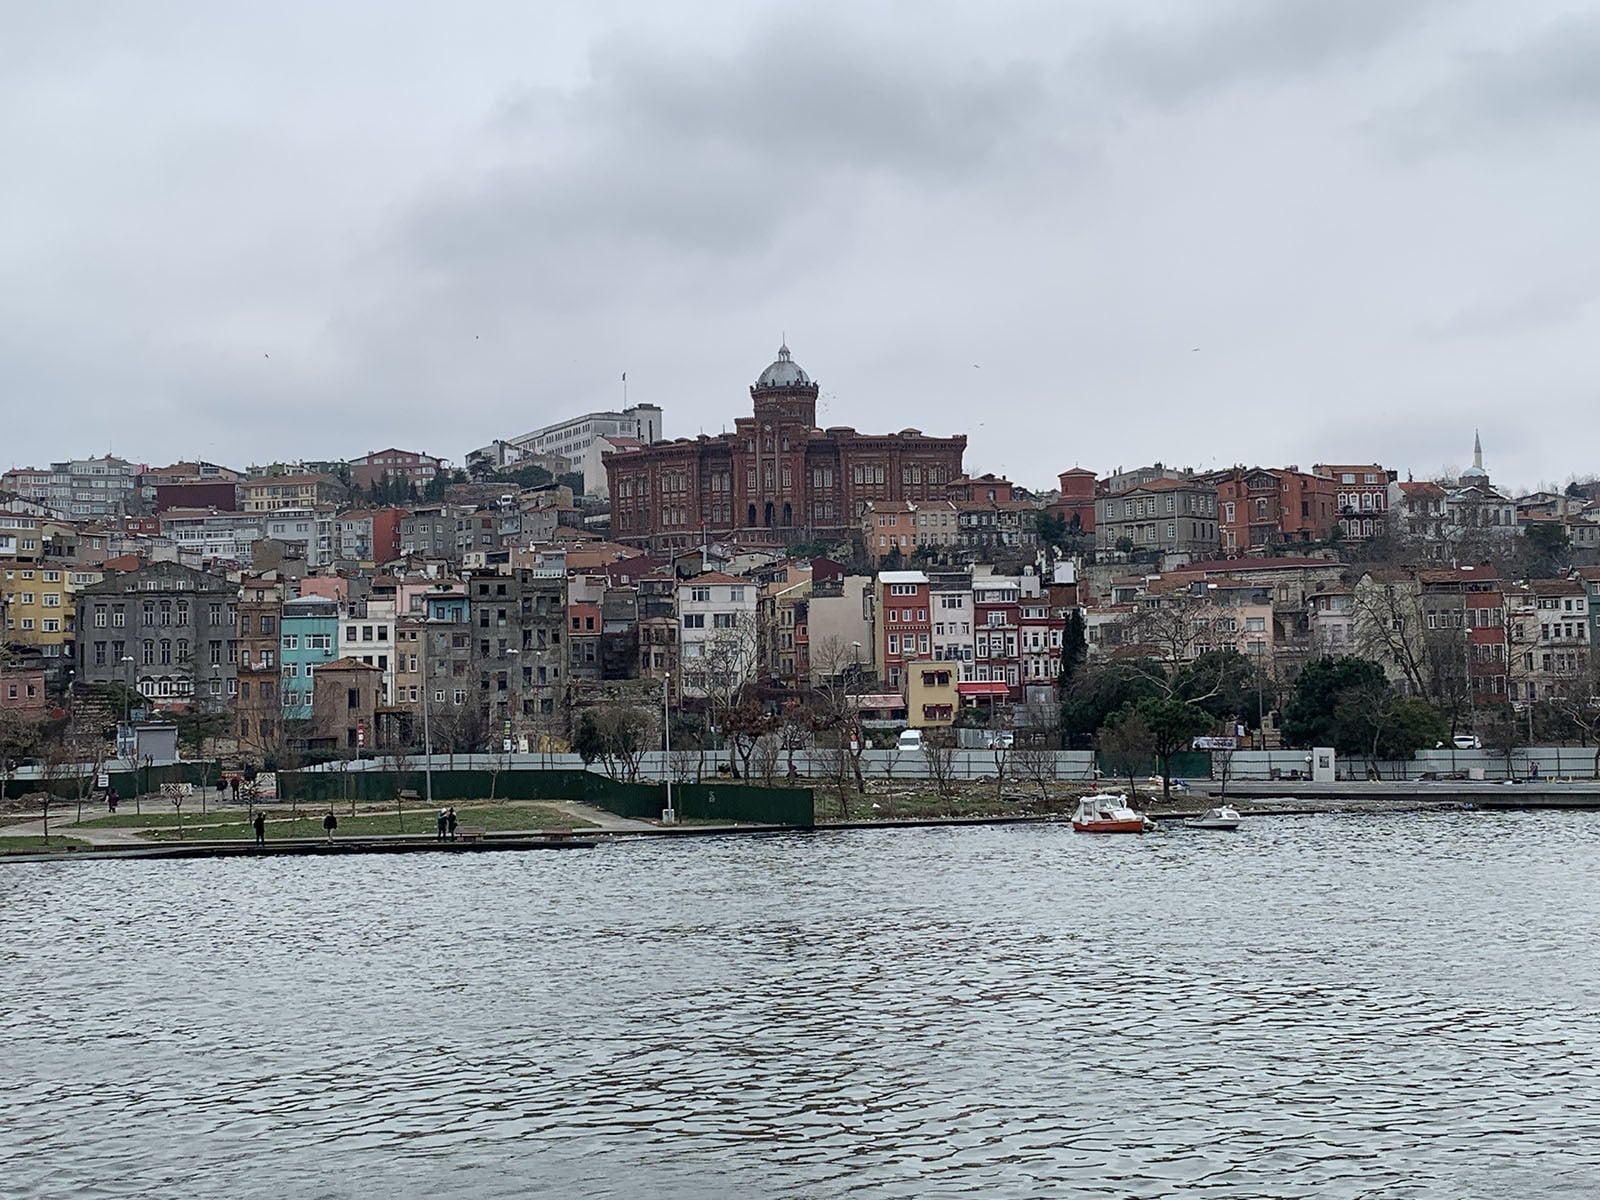 You can reach Balat via a ferry on the Golden Horn. The most prominent landmark is the redbrick Phanar Greek Orthodox College that can be seen from a distance.